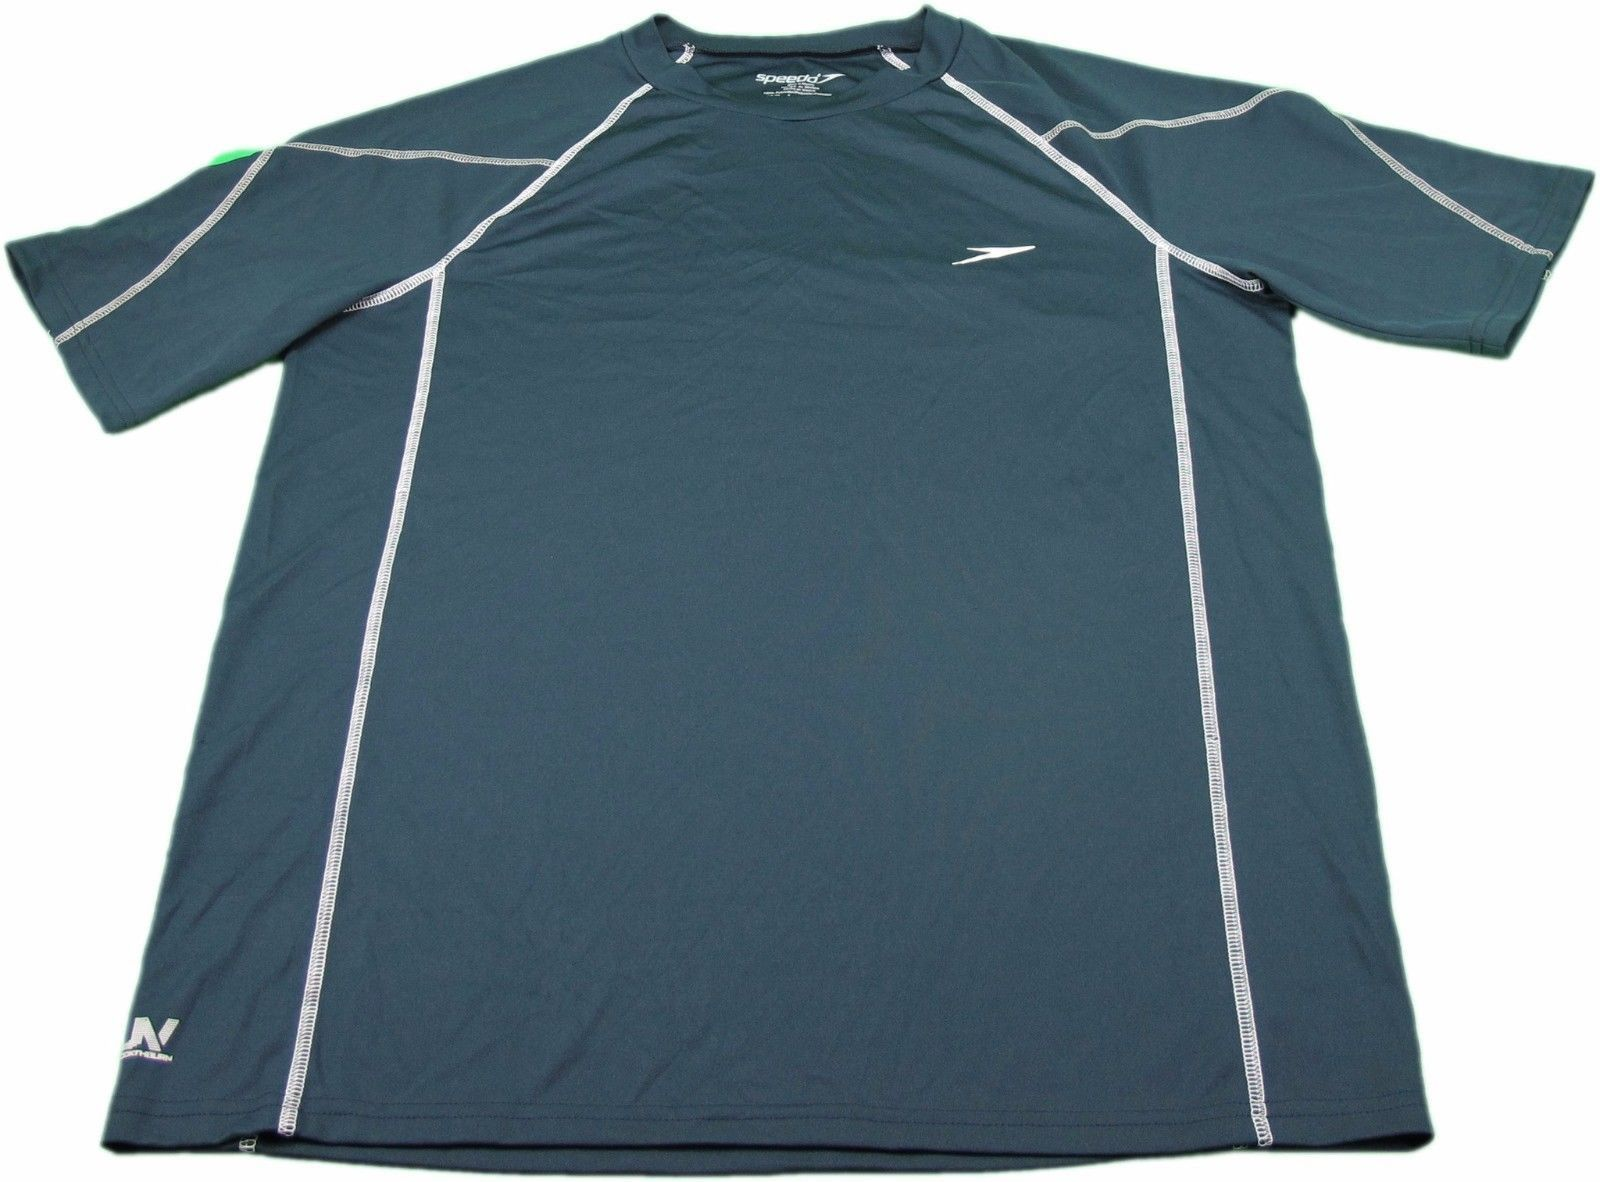 Speedo Men's Medium Polyester Athletic Shirt, Navy